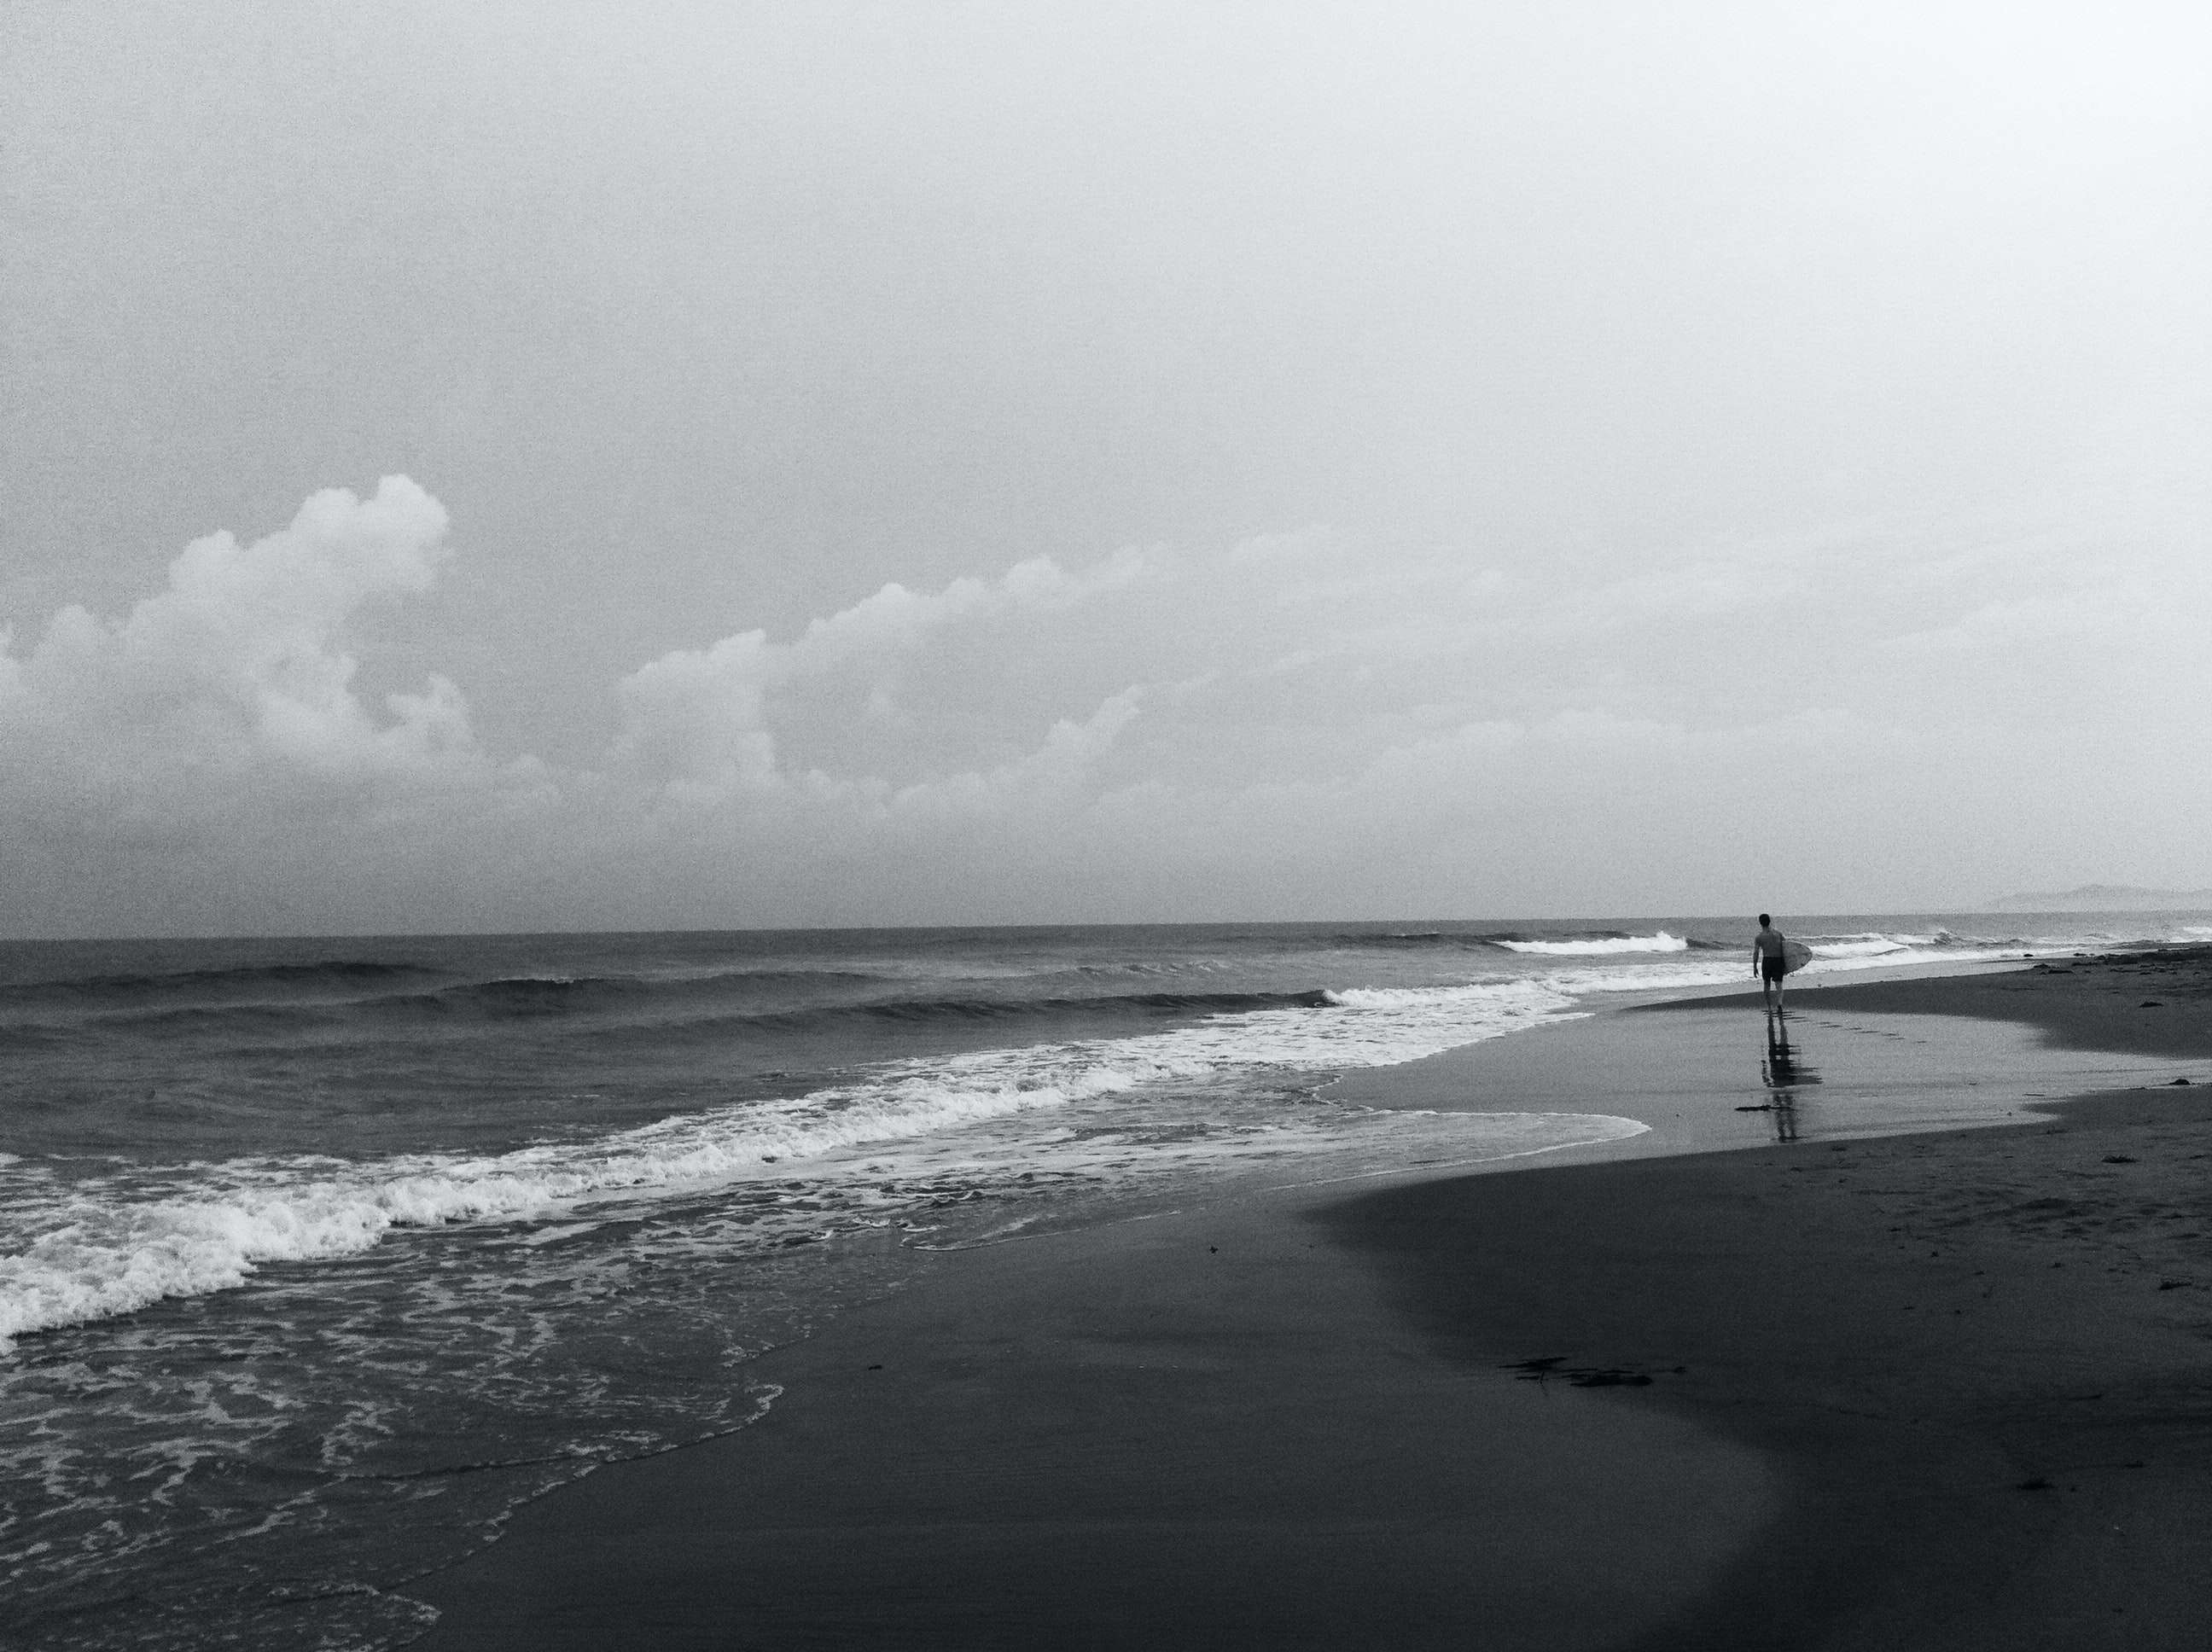 A black and white shot of a person walking a deserted beach beneath a cloudy sky